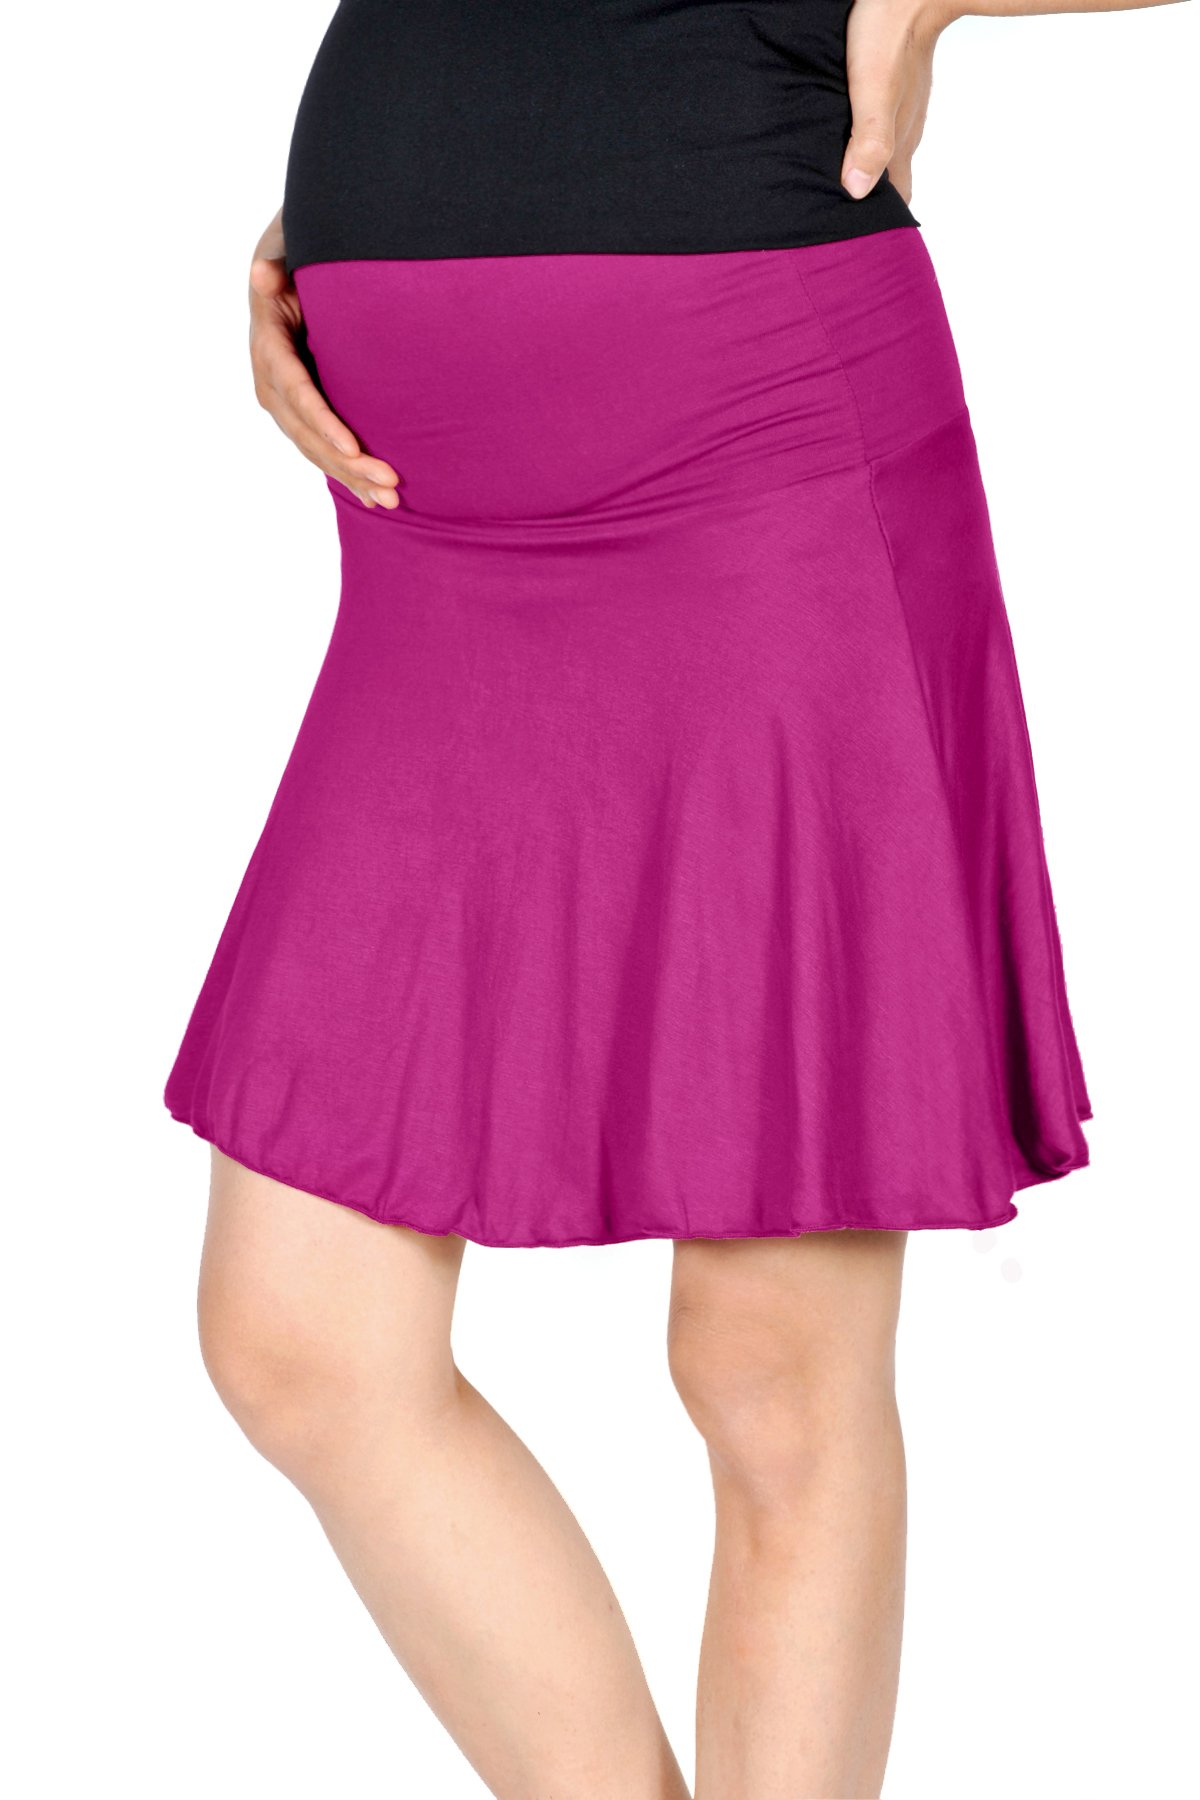 Beachcoco Women's Maternity Fold Over Flared Knee Length Skirt (M, Violet Pink)